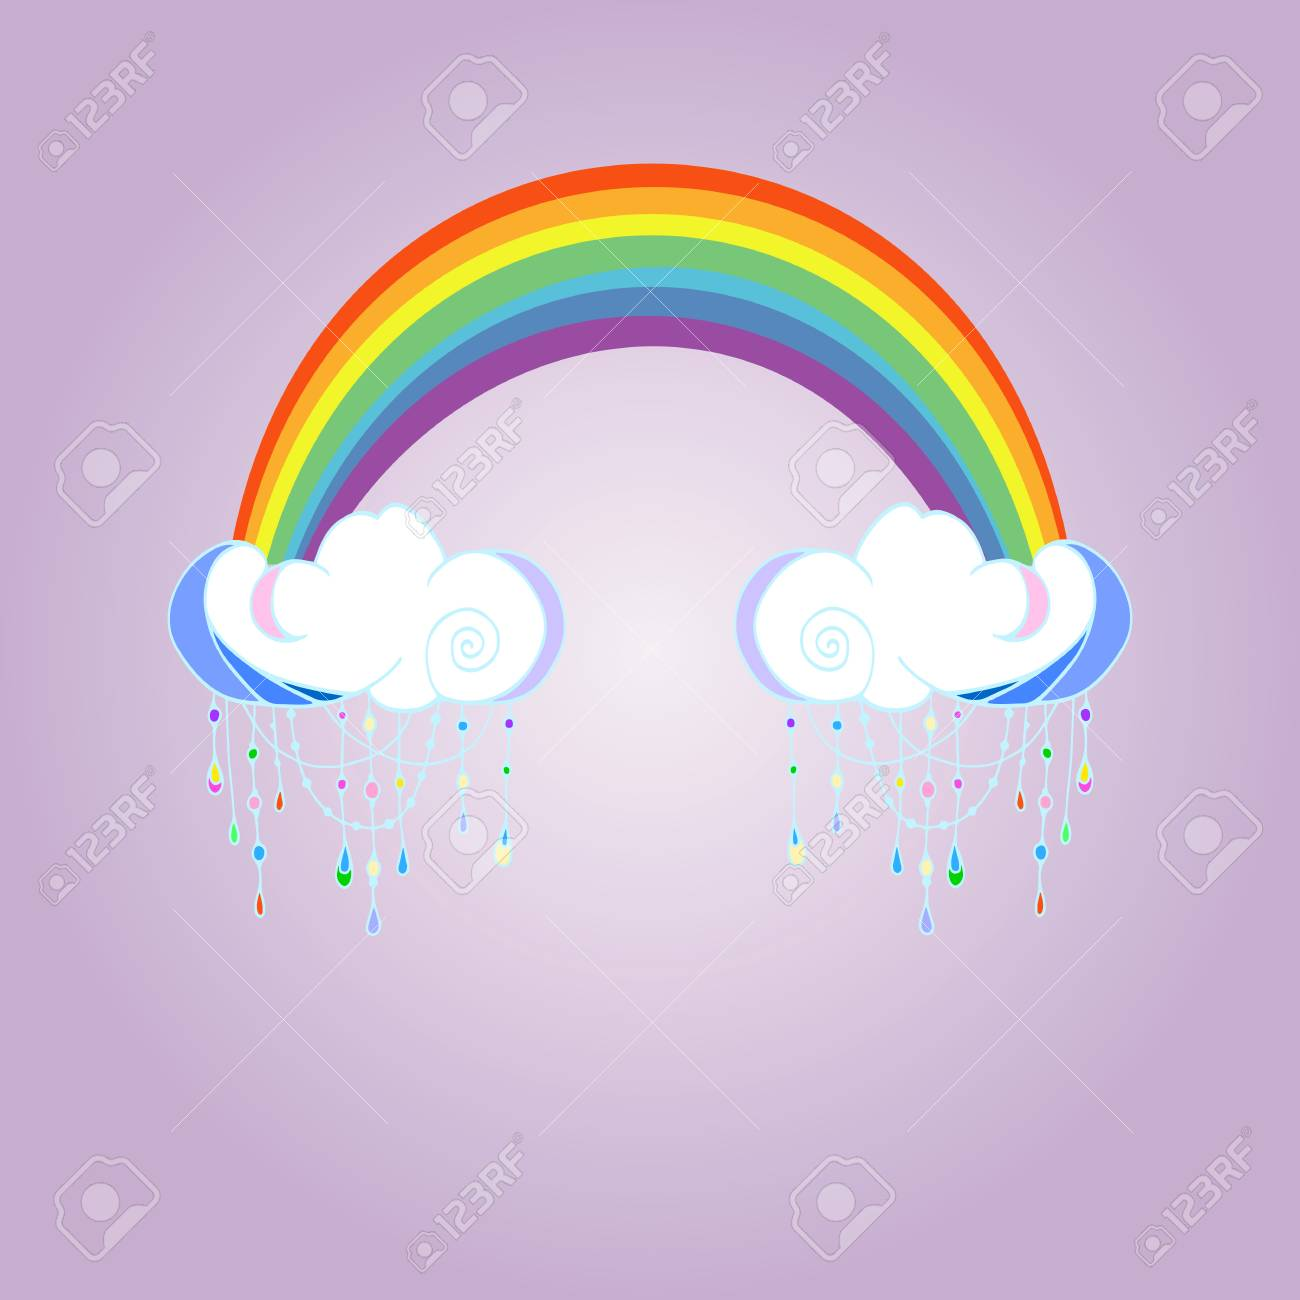 Rainbow and raining clouds on color background  Cute cloud poster